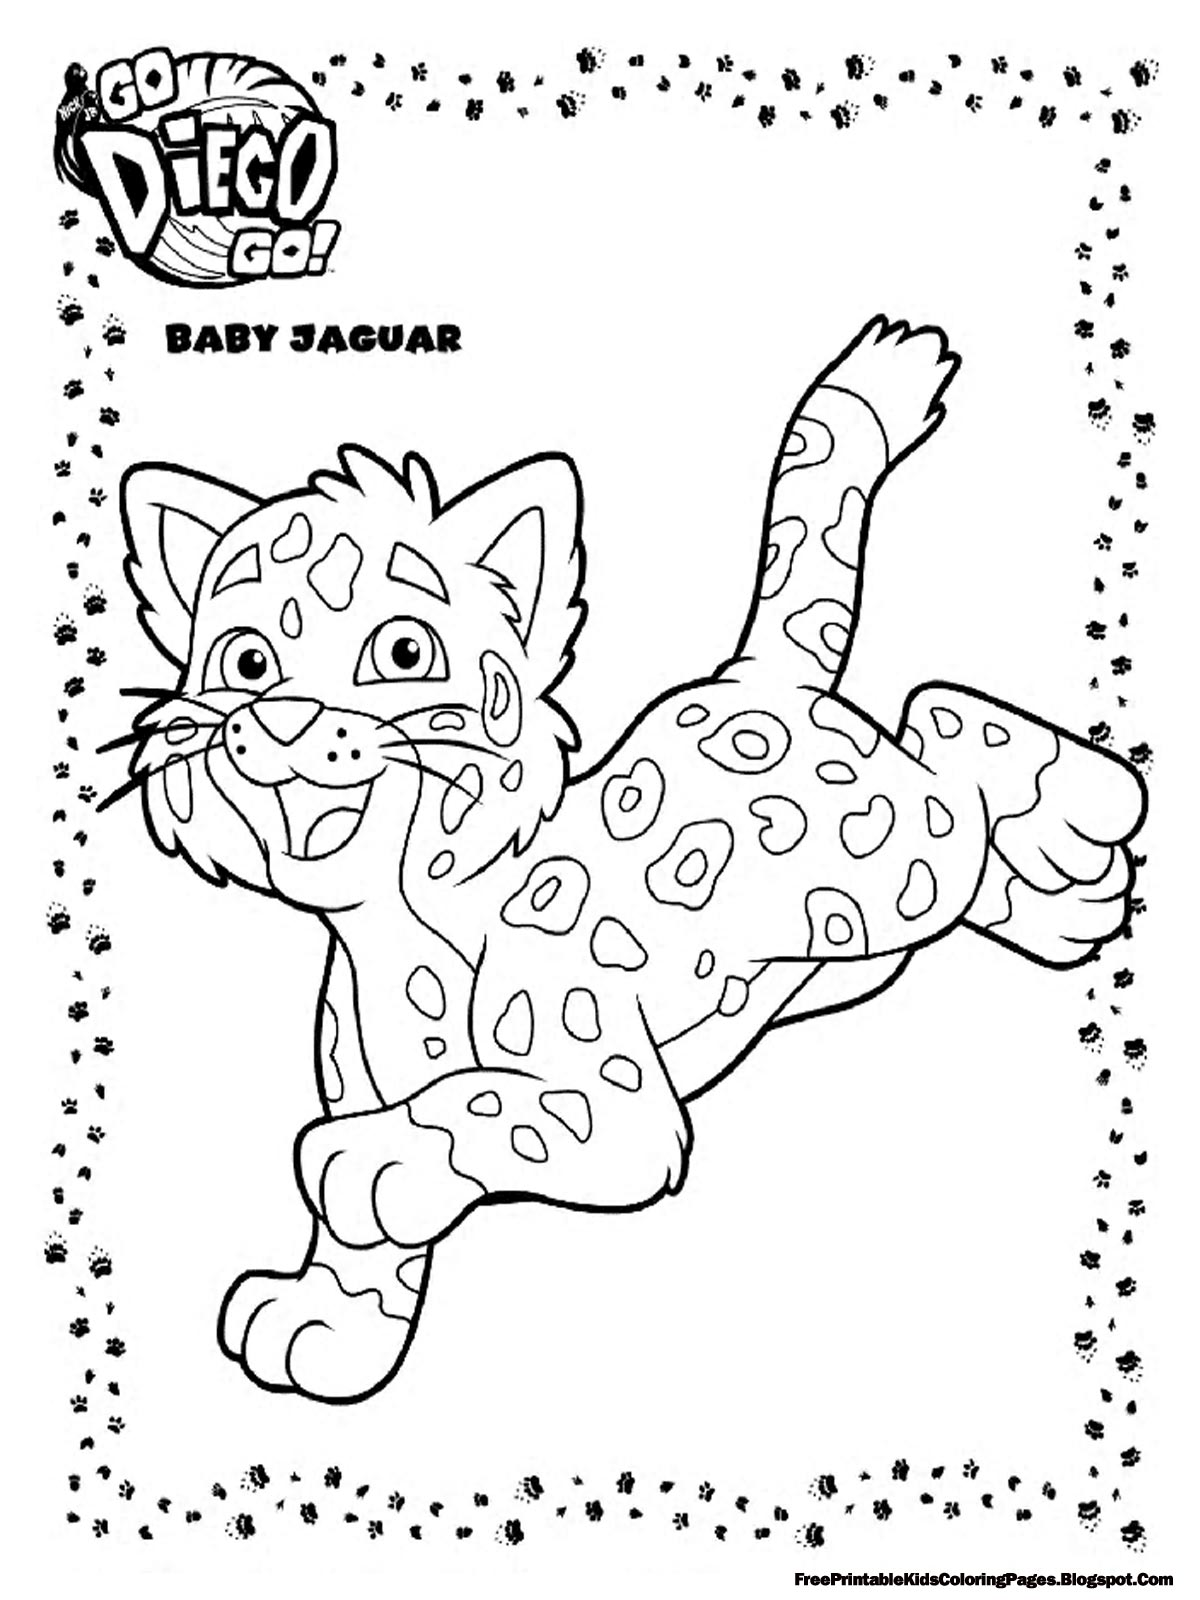 1200x1600 Diego Ba Jaguar Coloring Pages Printable Free Kids For Decorations